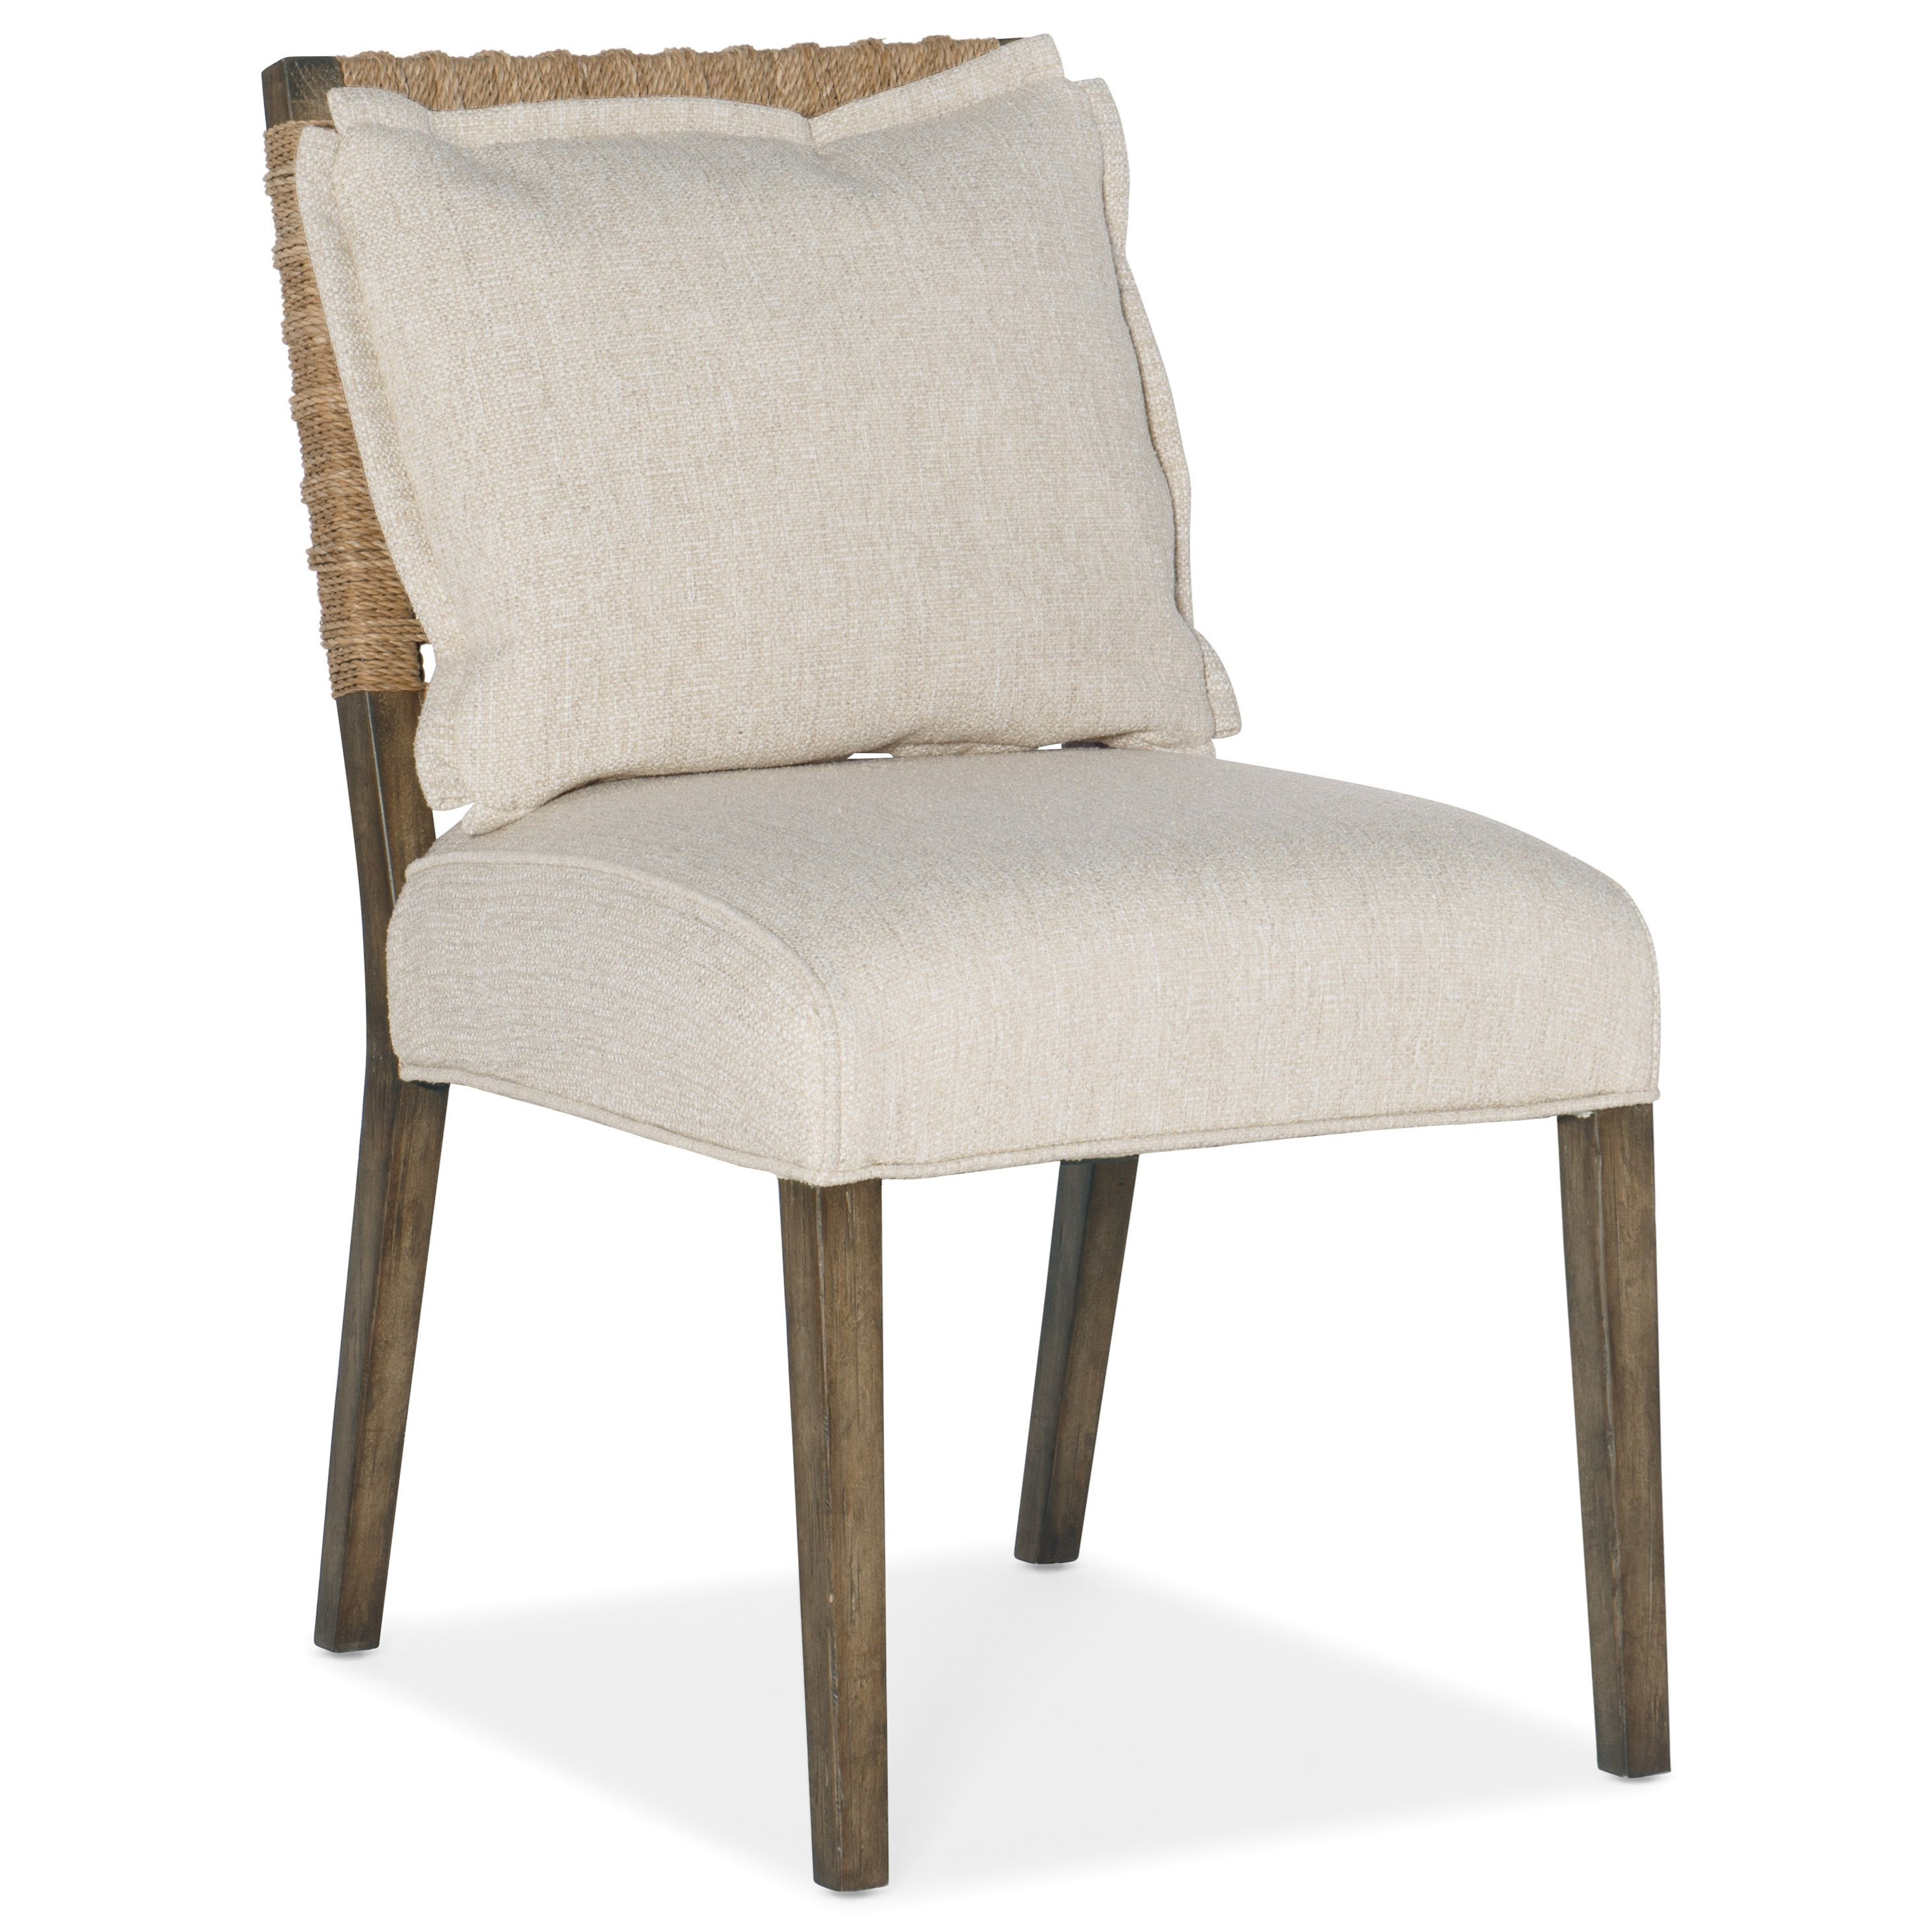 Sundance Side Chair by Hooker Furniture at Miller Waldrop Furniture and Decor